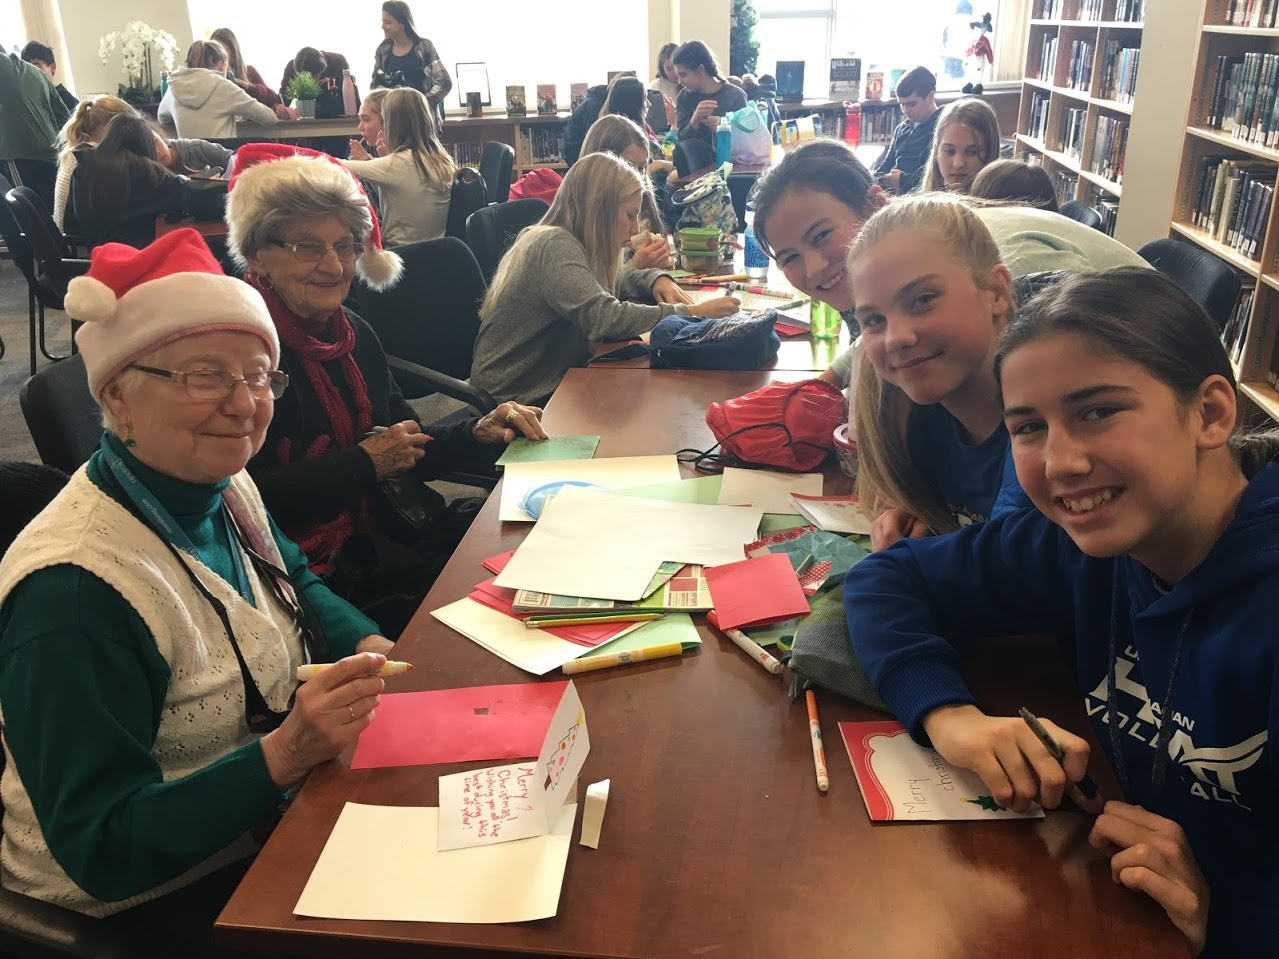 Dorchester Residents Partner with DRK Social Justice Club to Make Cards for the Homeless